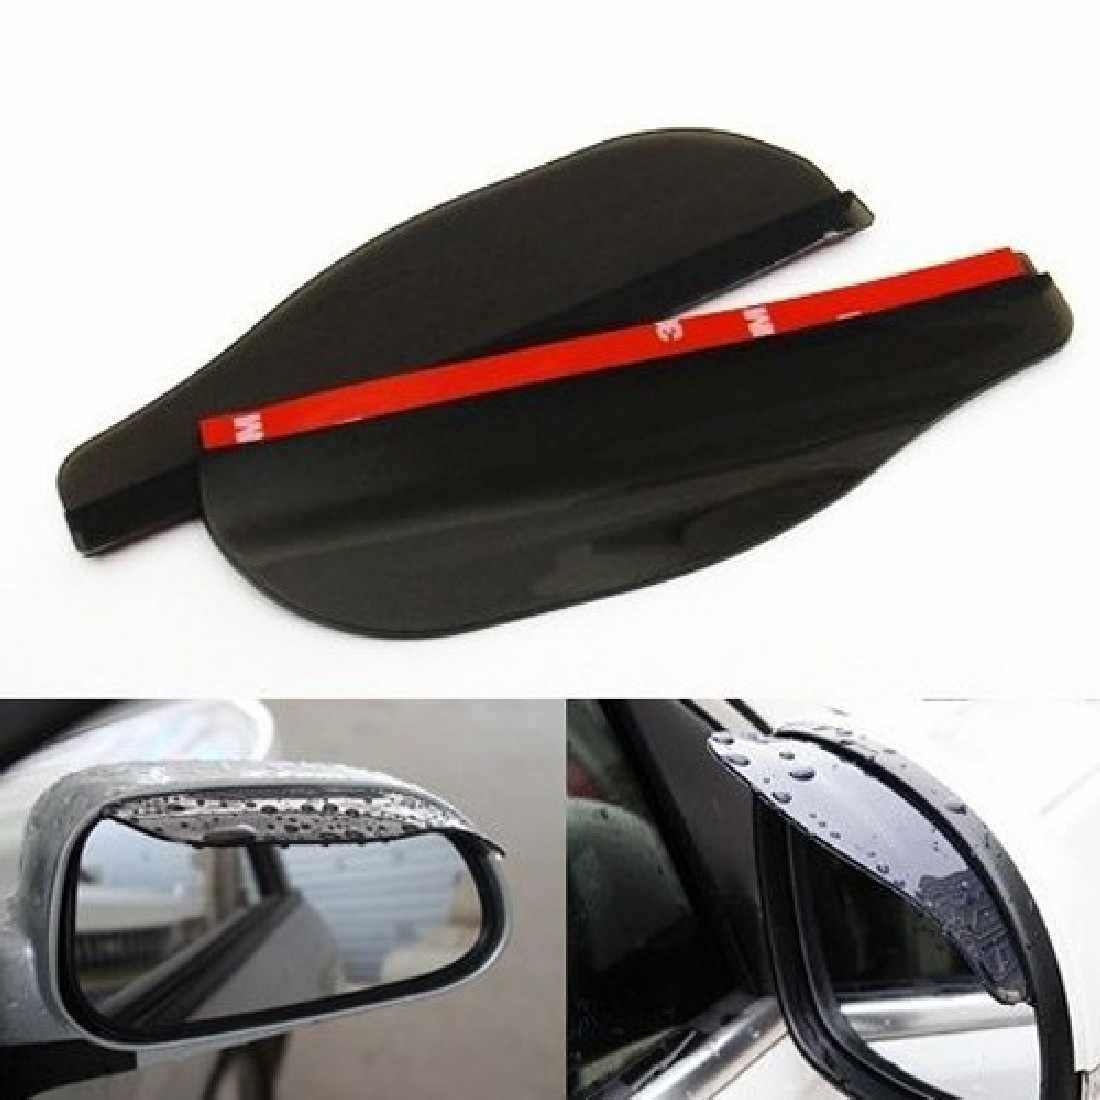 Special Offer Car Styling Rain Eyebrow FOR Volvo XC90 S60 S40 S80 V70 XC60 V40 V50 850 C30 V60 S70 940 XC70 C70 740 960 V40CC S